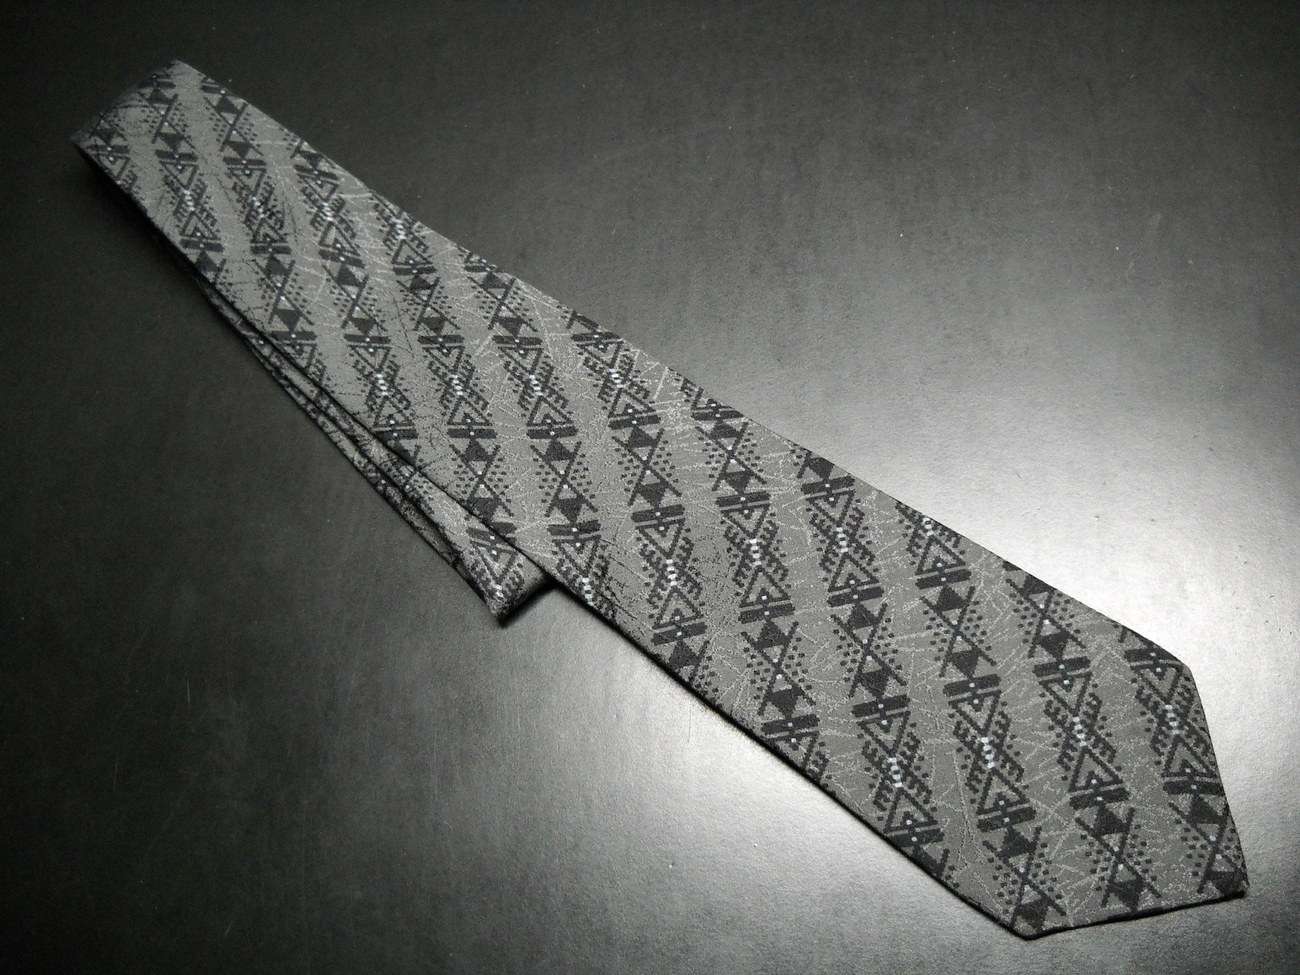 Gianni Versace Neck Tie Stripes in Black and Greys Silk Hand Made in Spain Versace, Gianni Versace